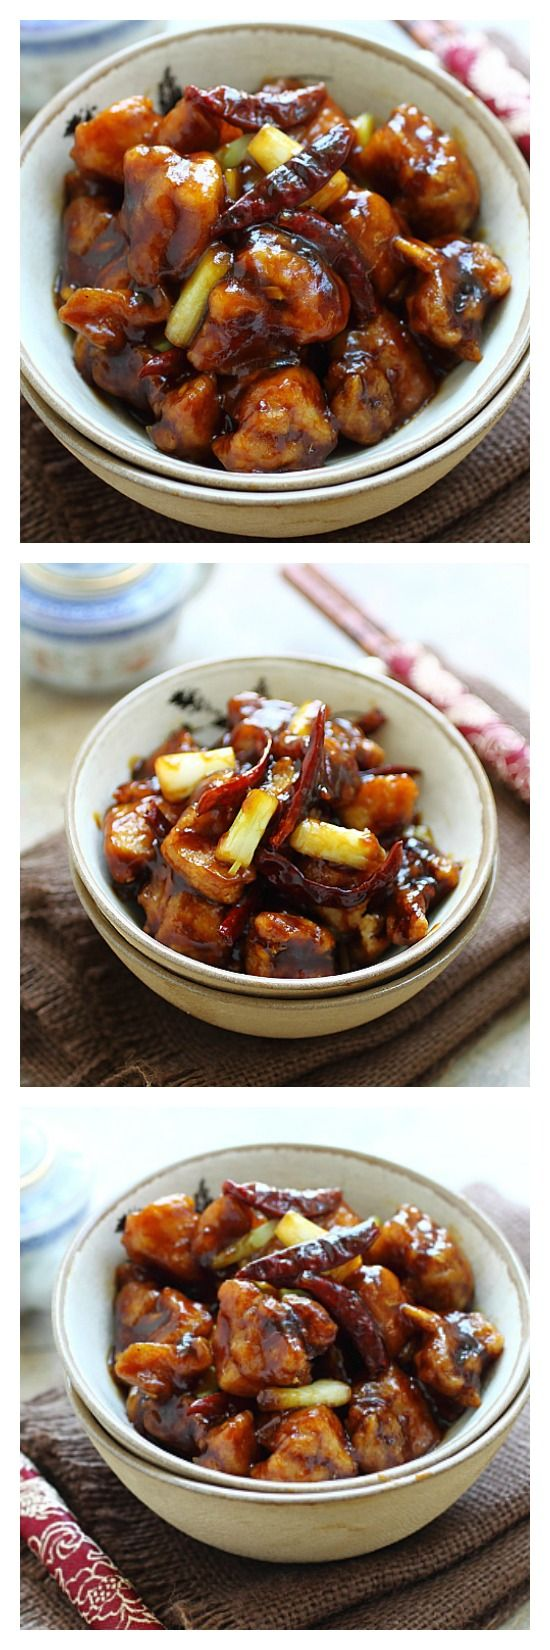 General tsos chicken recipe dishes recipes and food chinese food recipes forumfinder Images